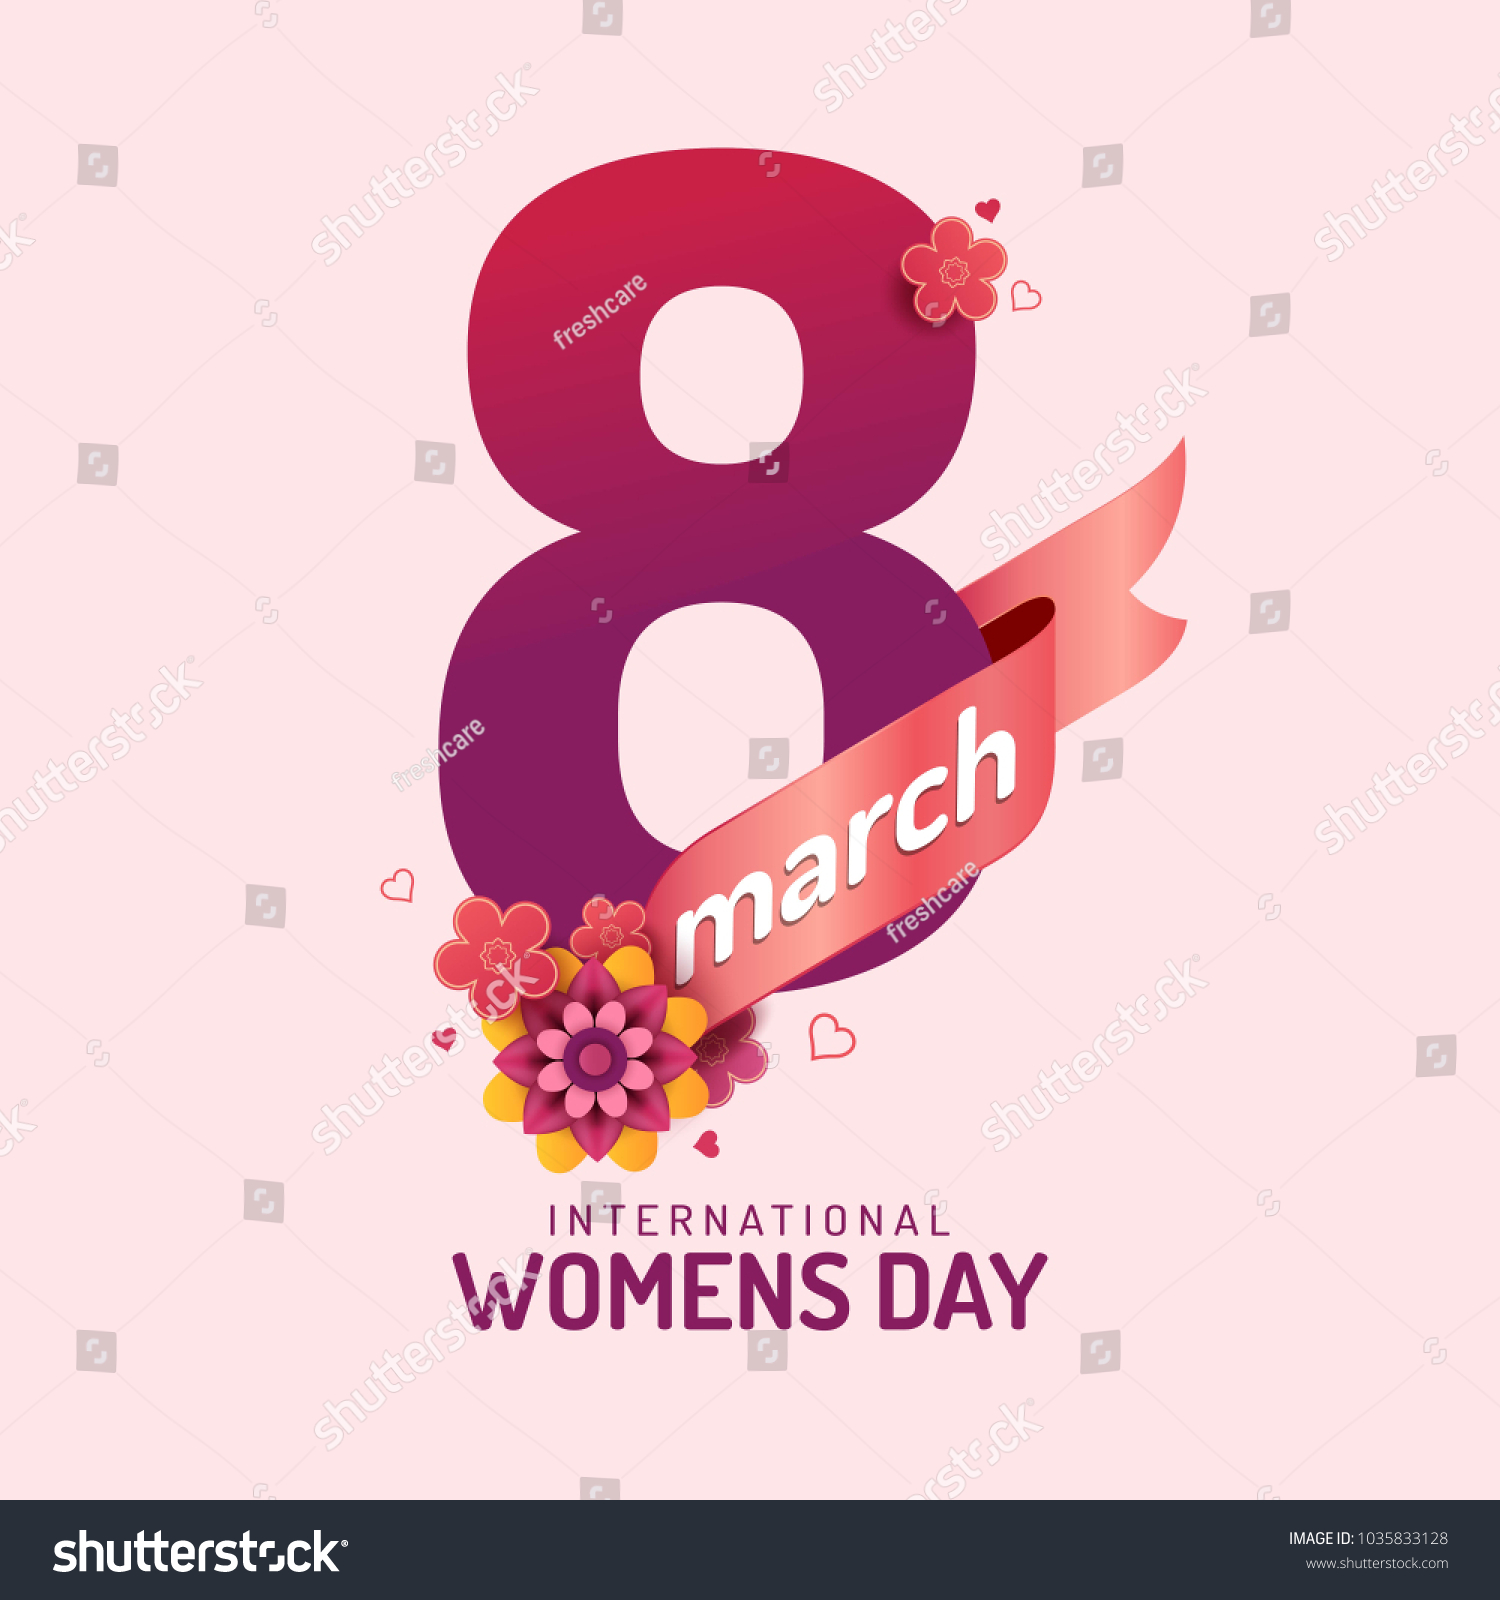 Happy Womens Day Vector Illustration Decorative Stock Frescare With Flower And Text 8 March Beautiful Moment